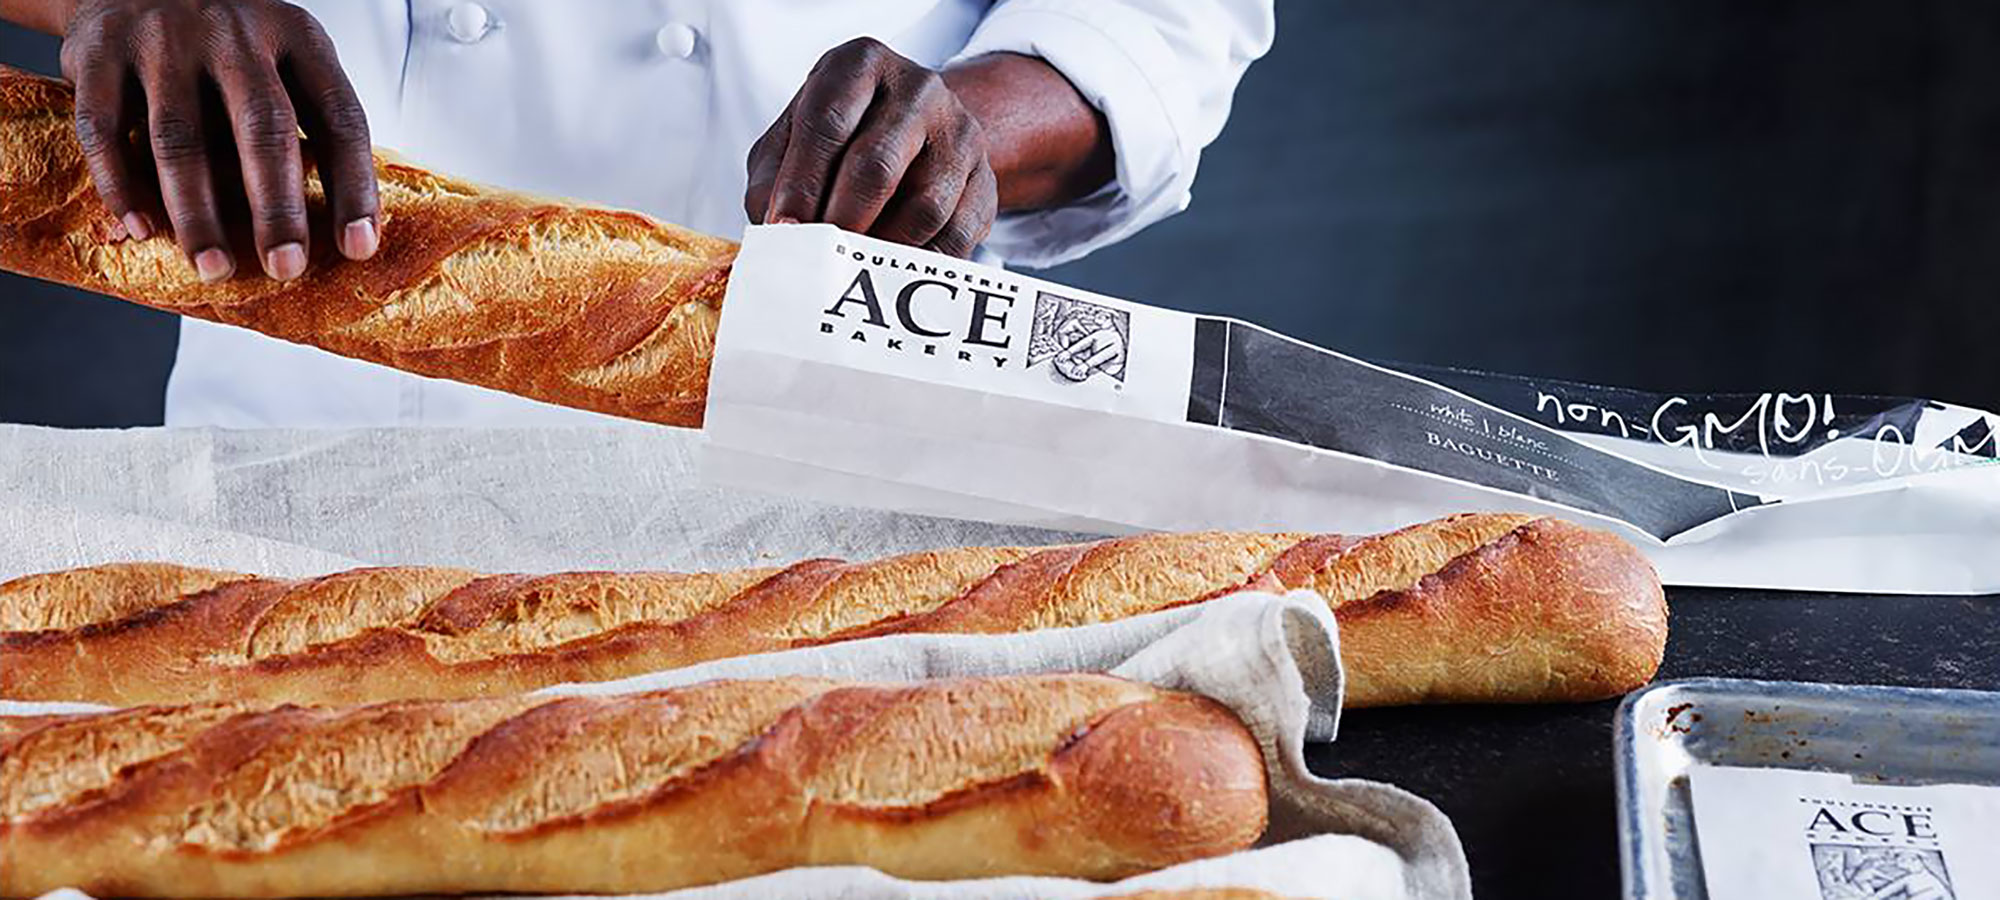 ACE Bakery white baguettes